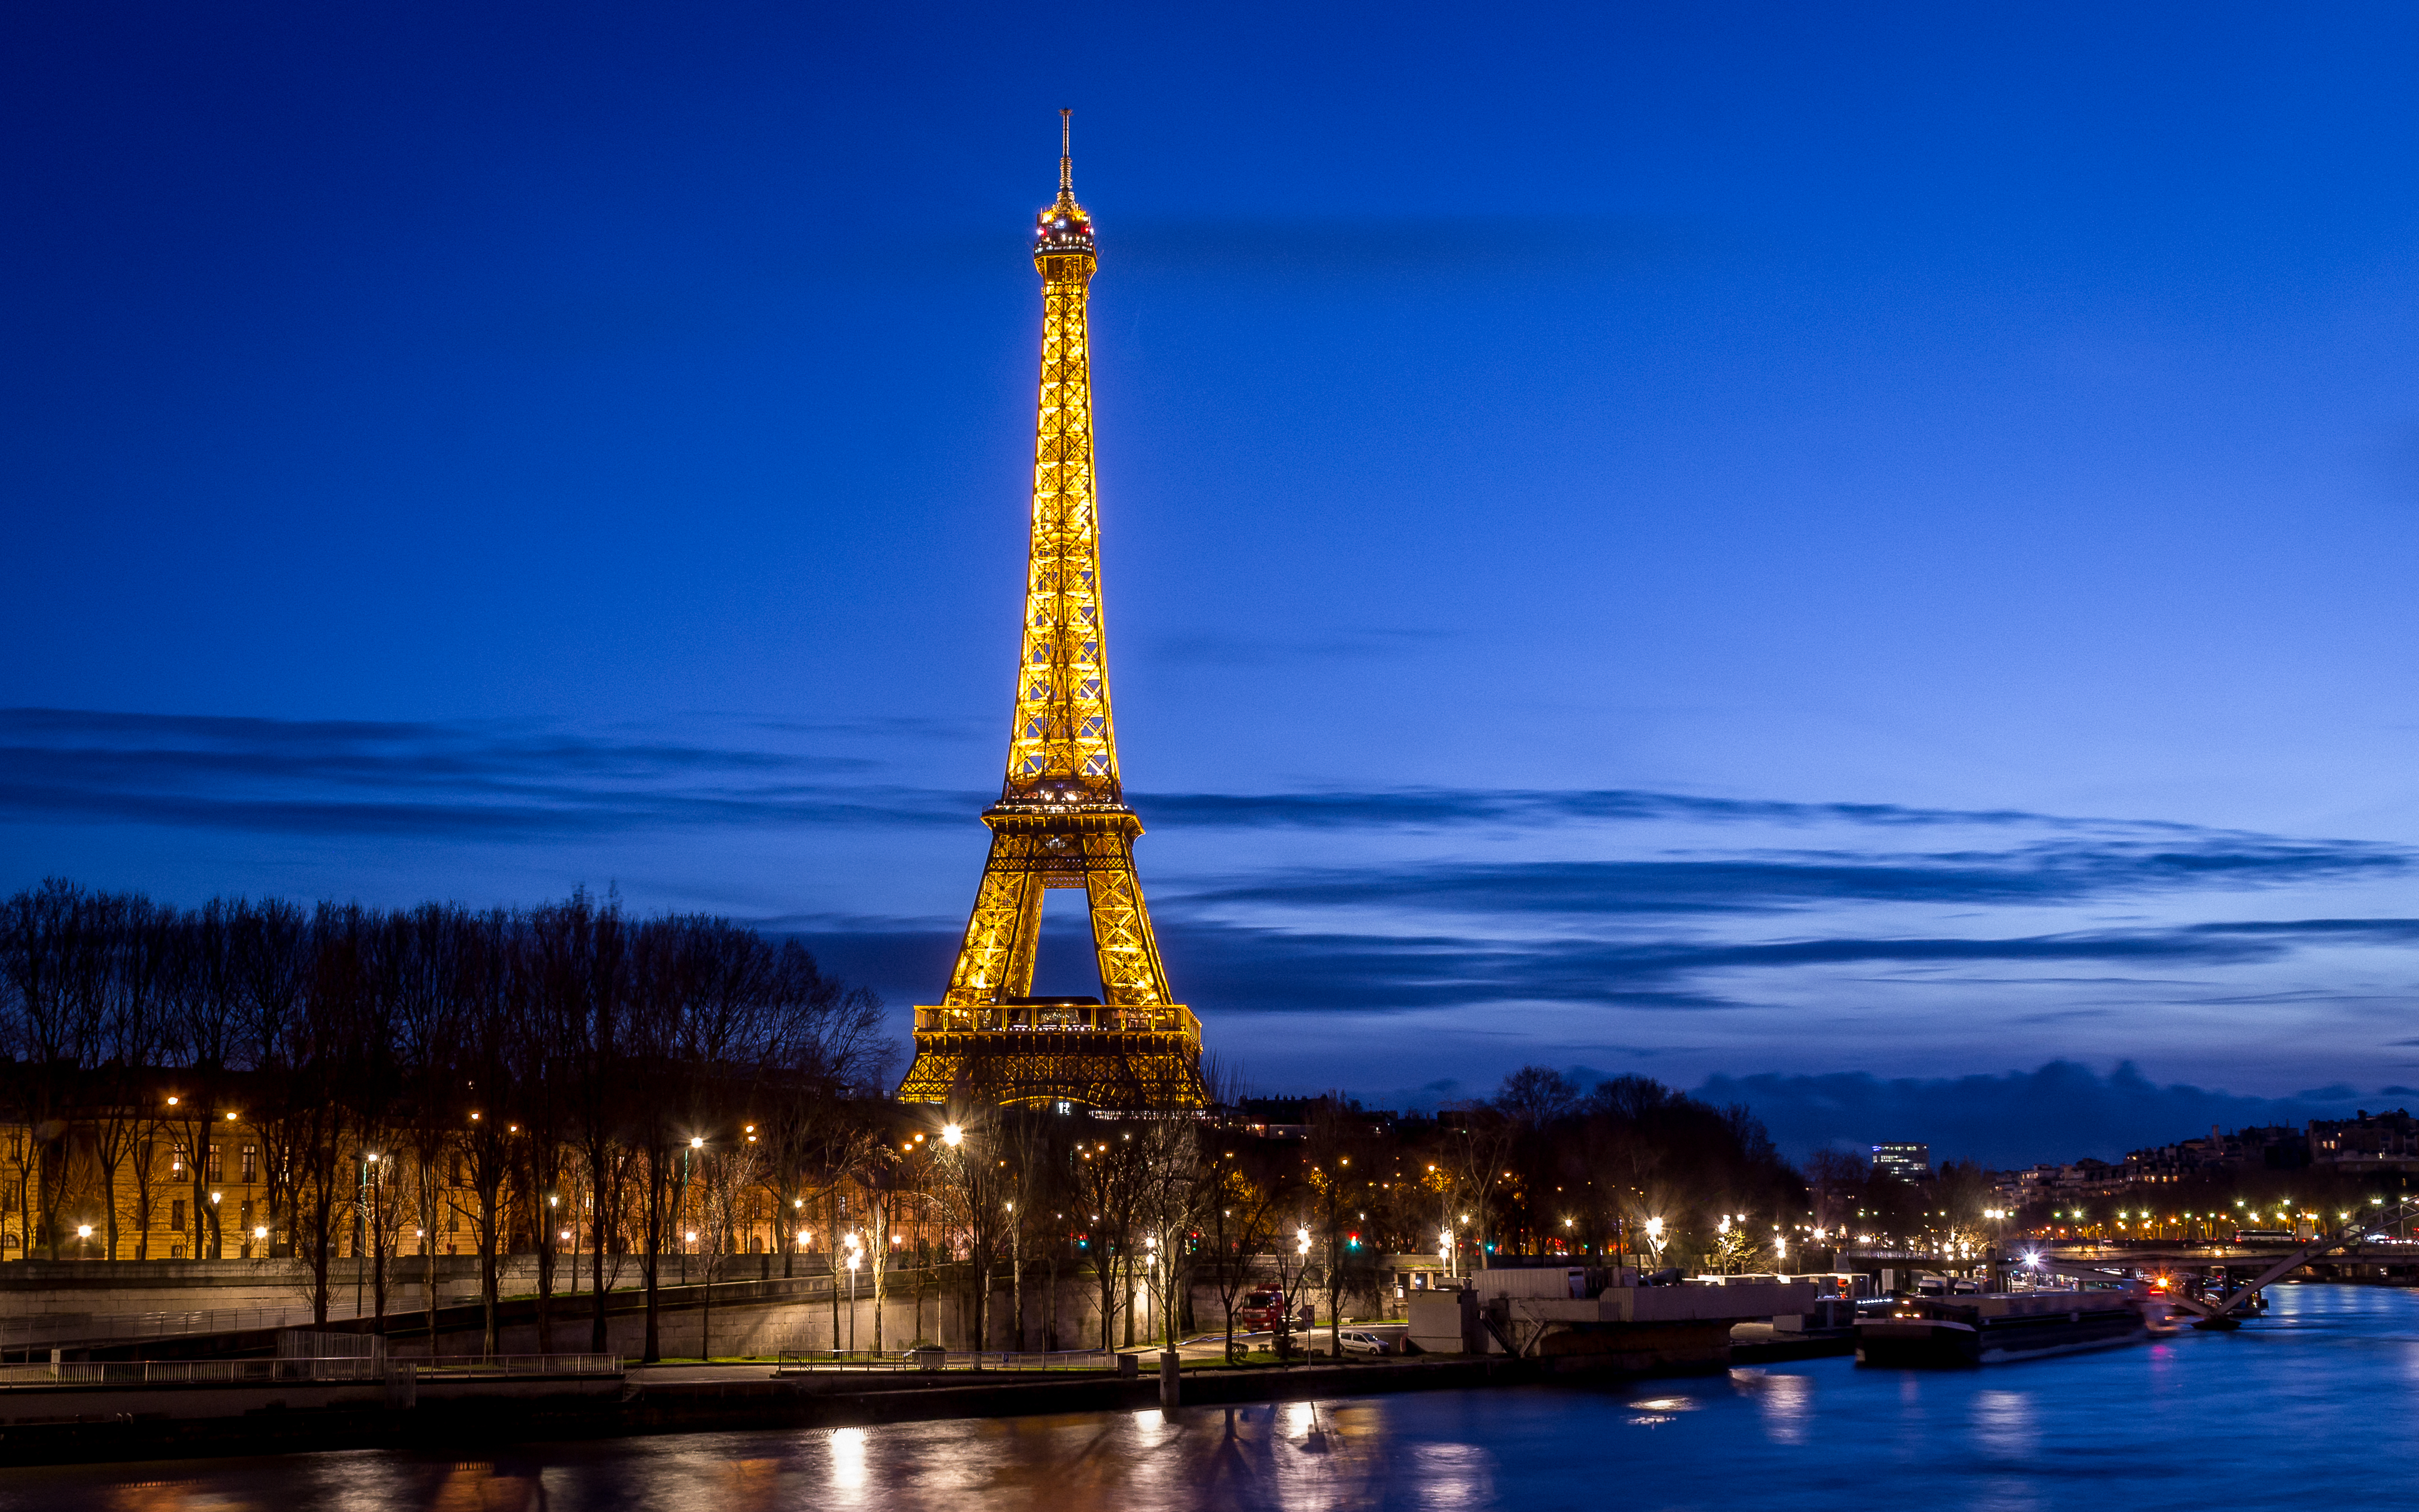 Cruise down the Seine for the best of Paris by night